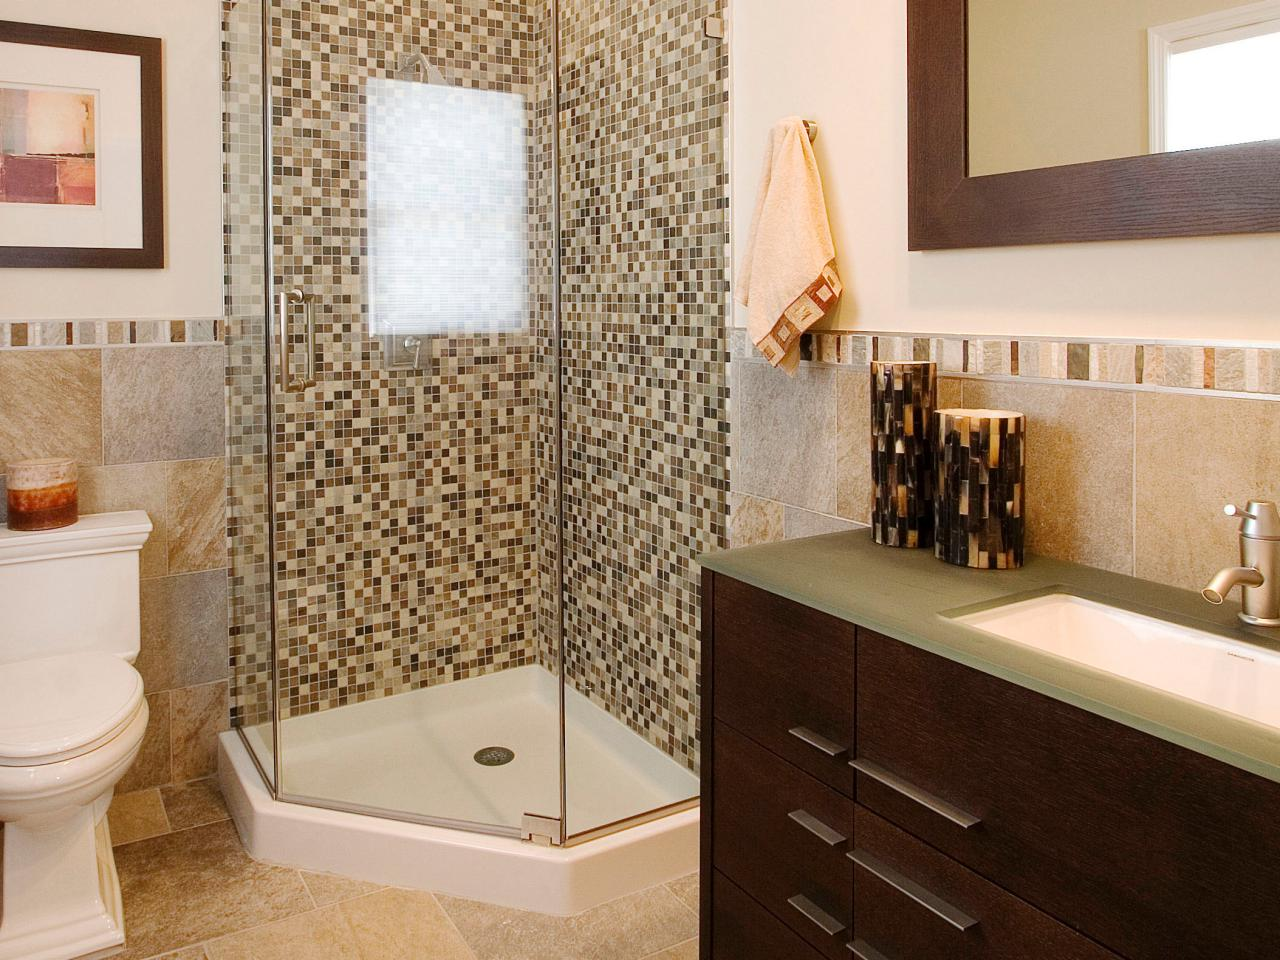 SP0022_RX-small-shower-bath_s3x4.jpg.rend.hgtvcom.1280.960